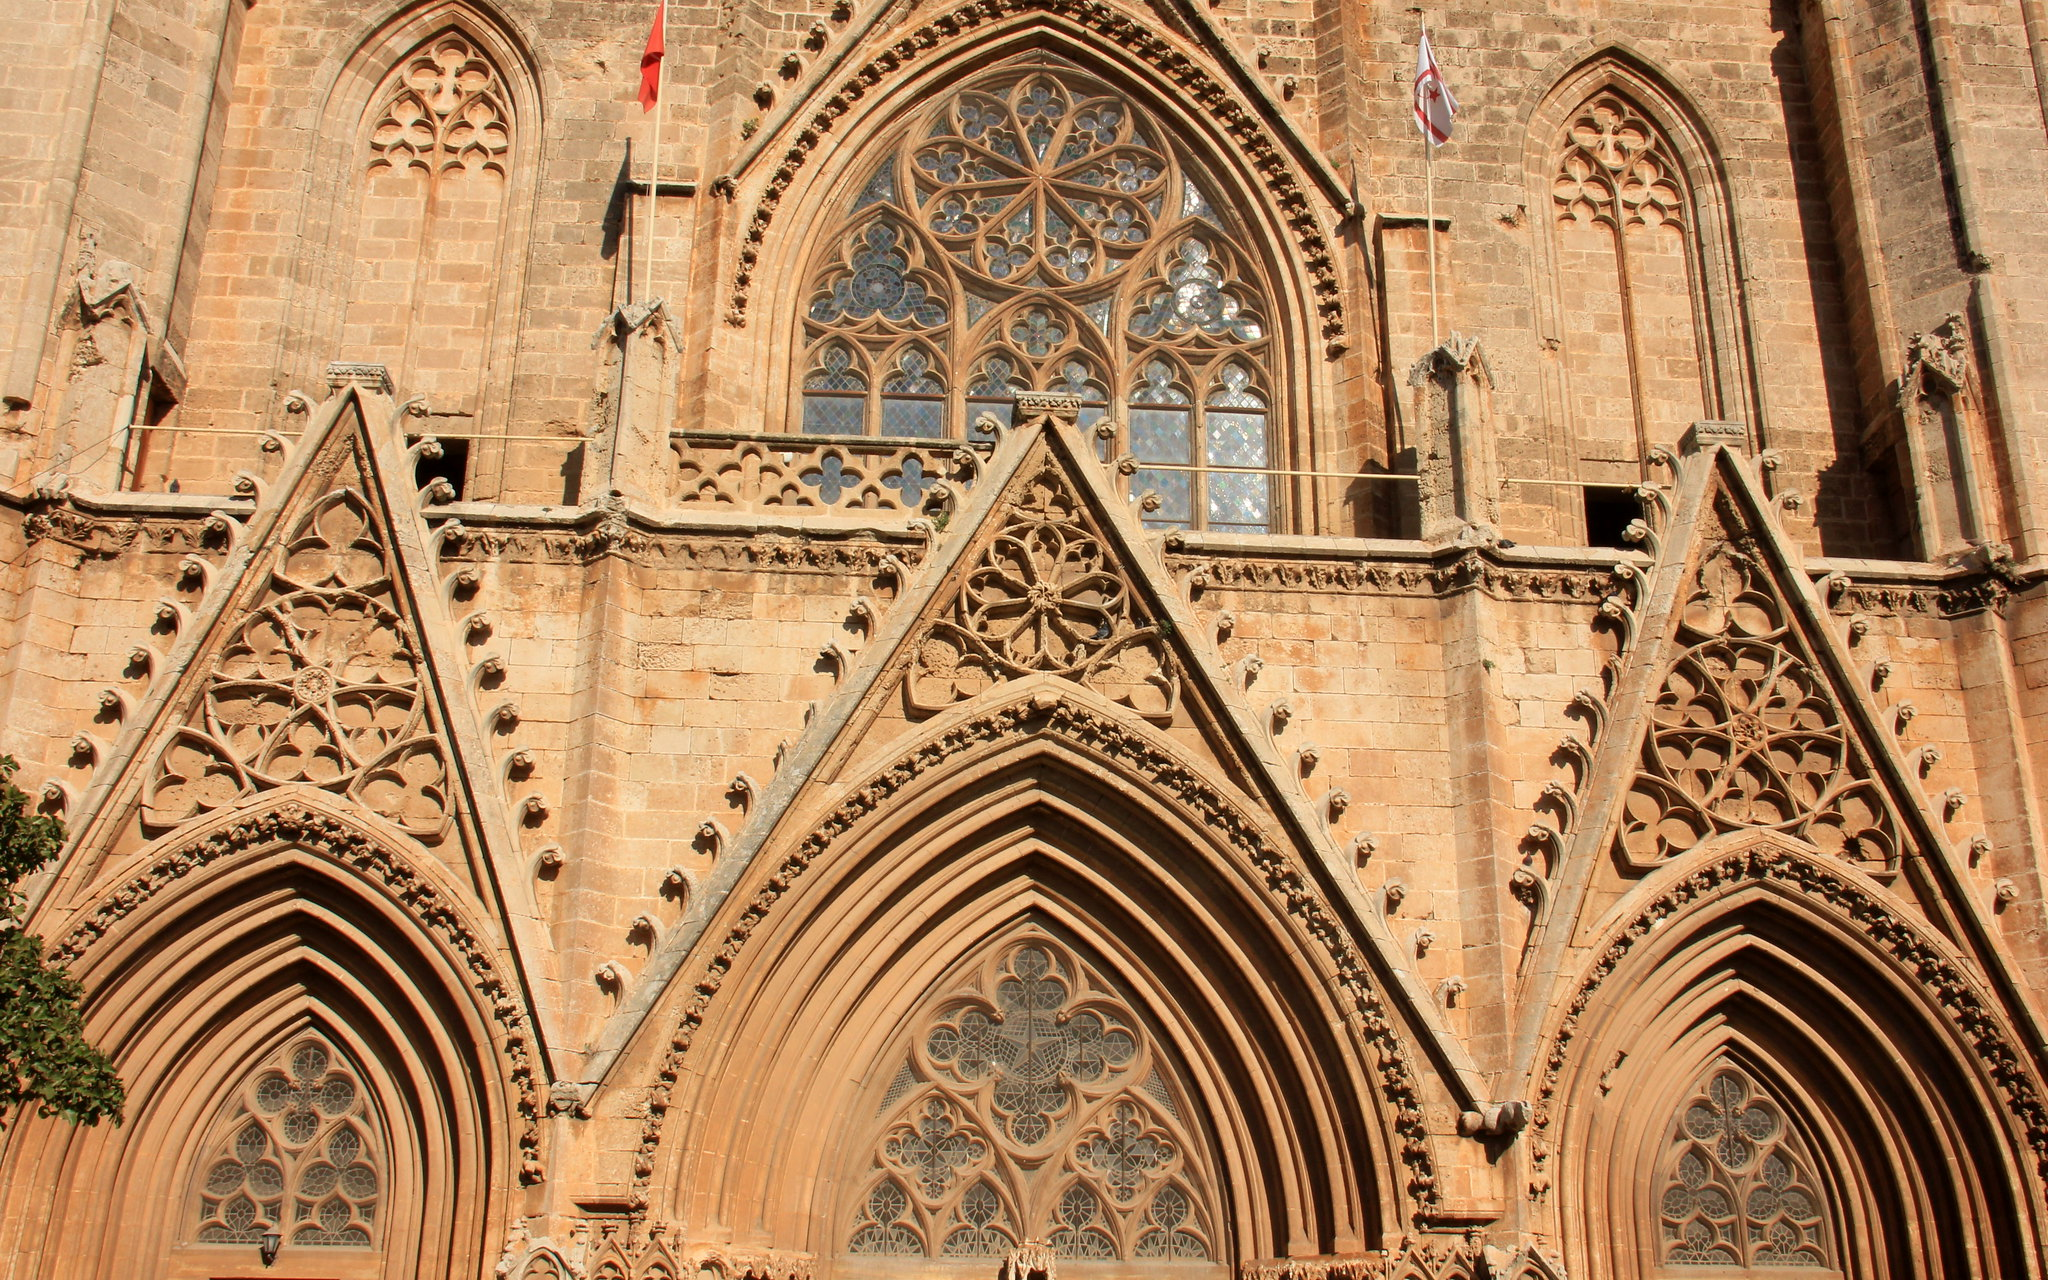 The gorgeous cathedrals of Famagusta makes it compelling to visit Northern Cyprus